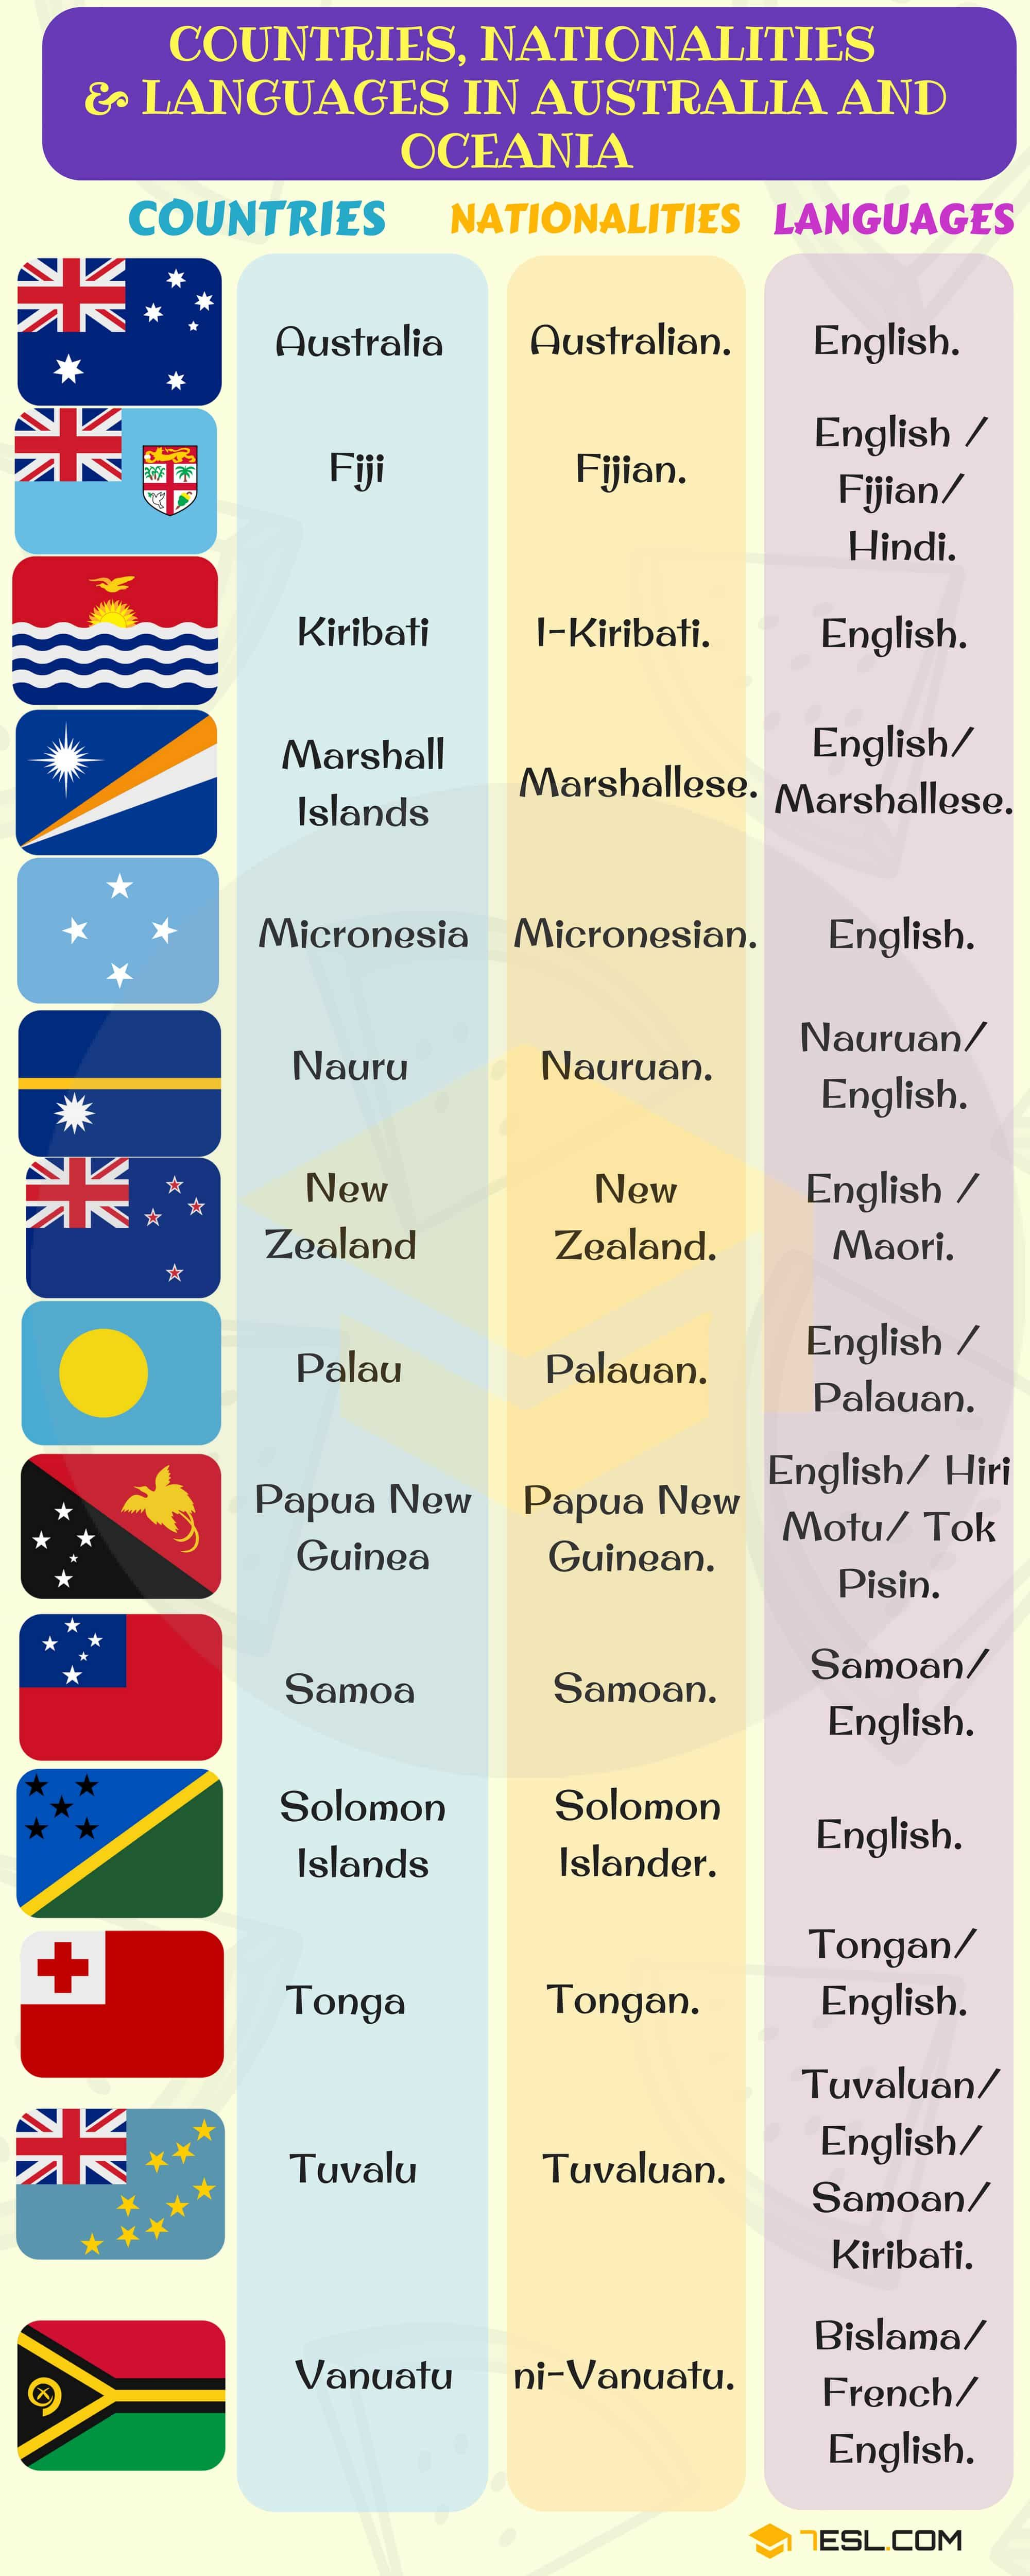 Oceania Countries With Languages Nationalities Flags 7 E S L Language Learn Another Language English Vocabulary